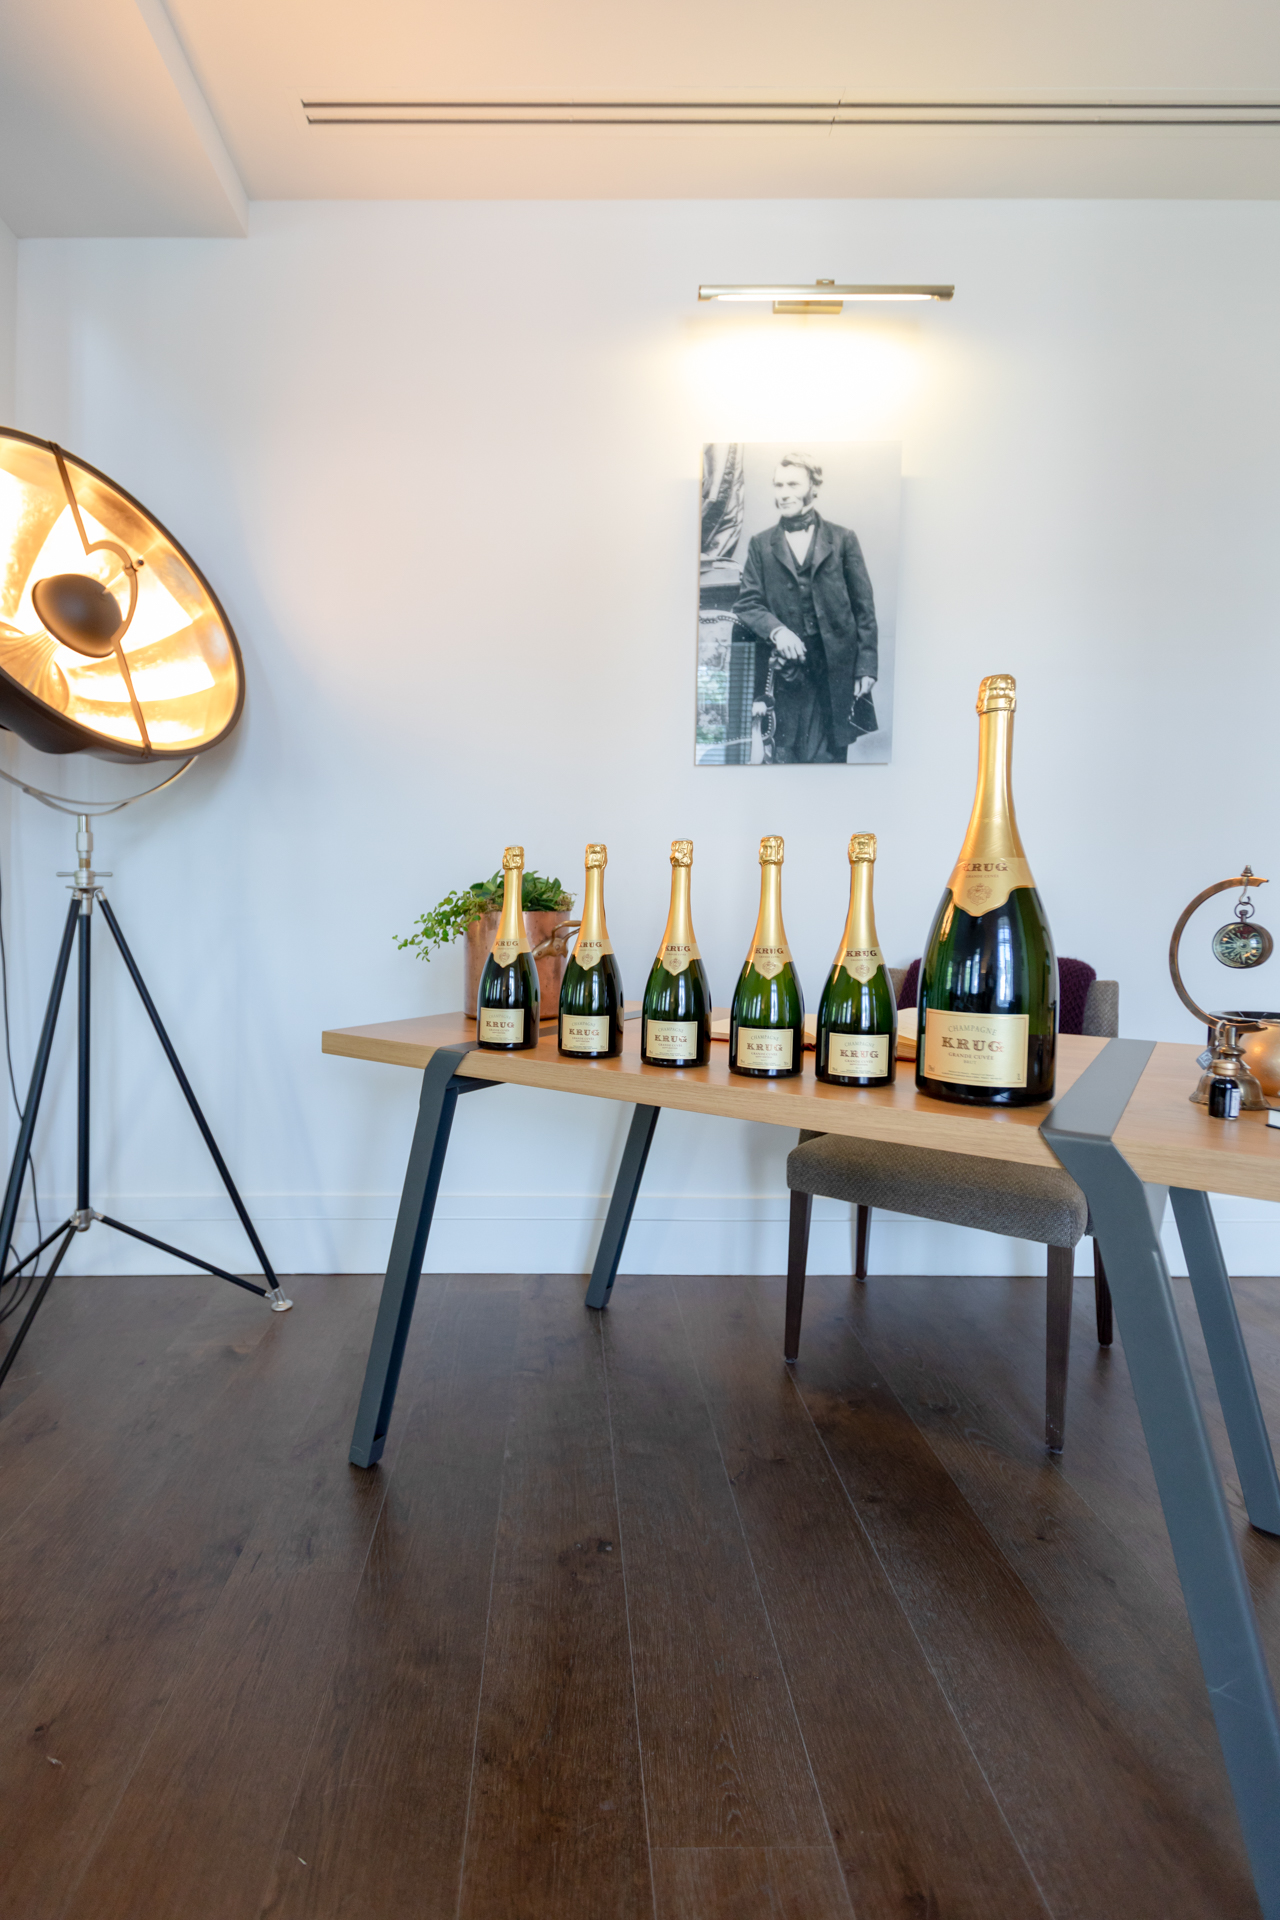 Krug Unforgettable Journey May 2018 photos ©alexisjacquin-1250-web.jpg